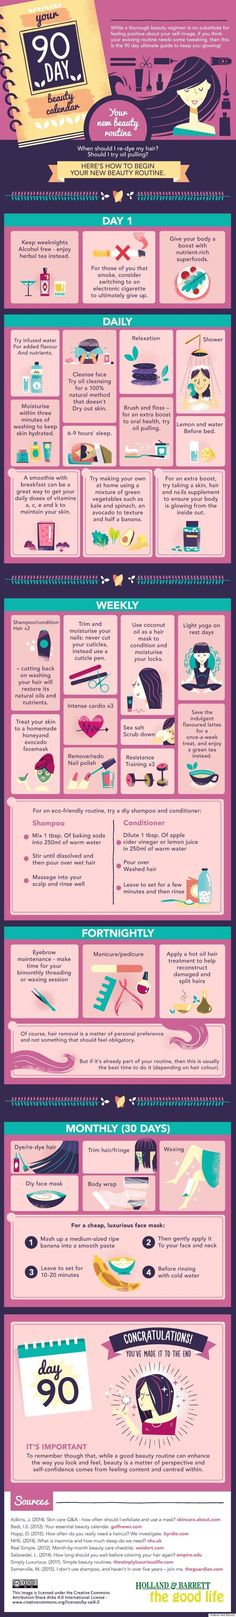 90 Days Guide To Look Healthy And Glam Here's a great 90 day plan to get your body in tip-top shape just in time for Summer.Here's a great 90 day plan to get your body in tip-top shape just in time for Summer. Beauty Care, Diy Beauty, Beauty Skin, Beauty Hacks, Health And Beauty, Beauty Advice, Beauty Guide, Skin Tips, Skin Care Tips